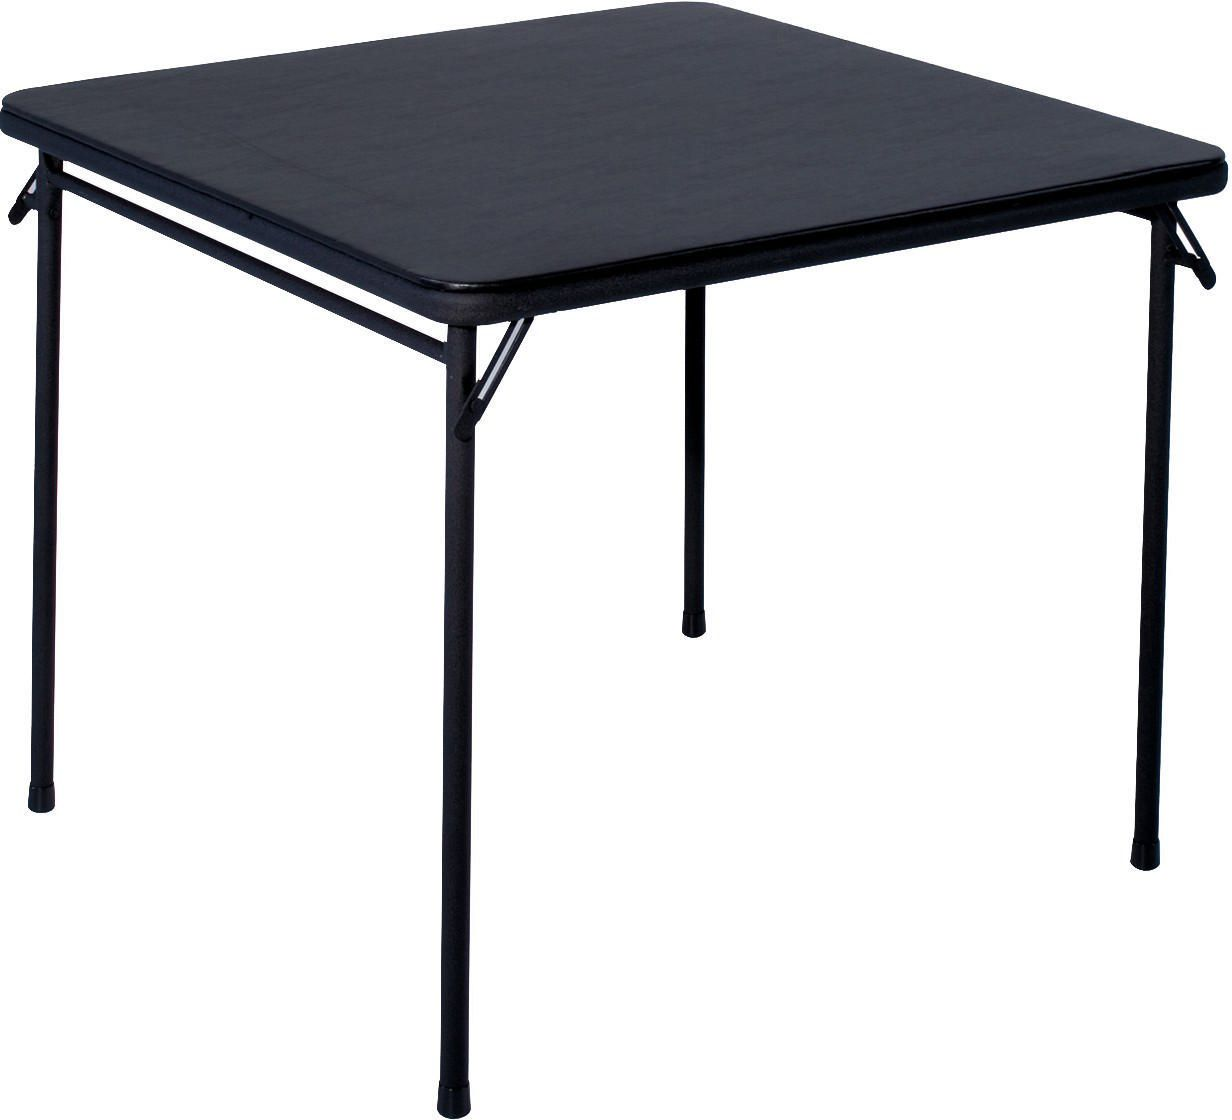 6ft Plastic Folding Tables Images